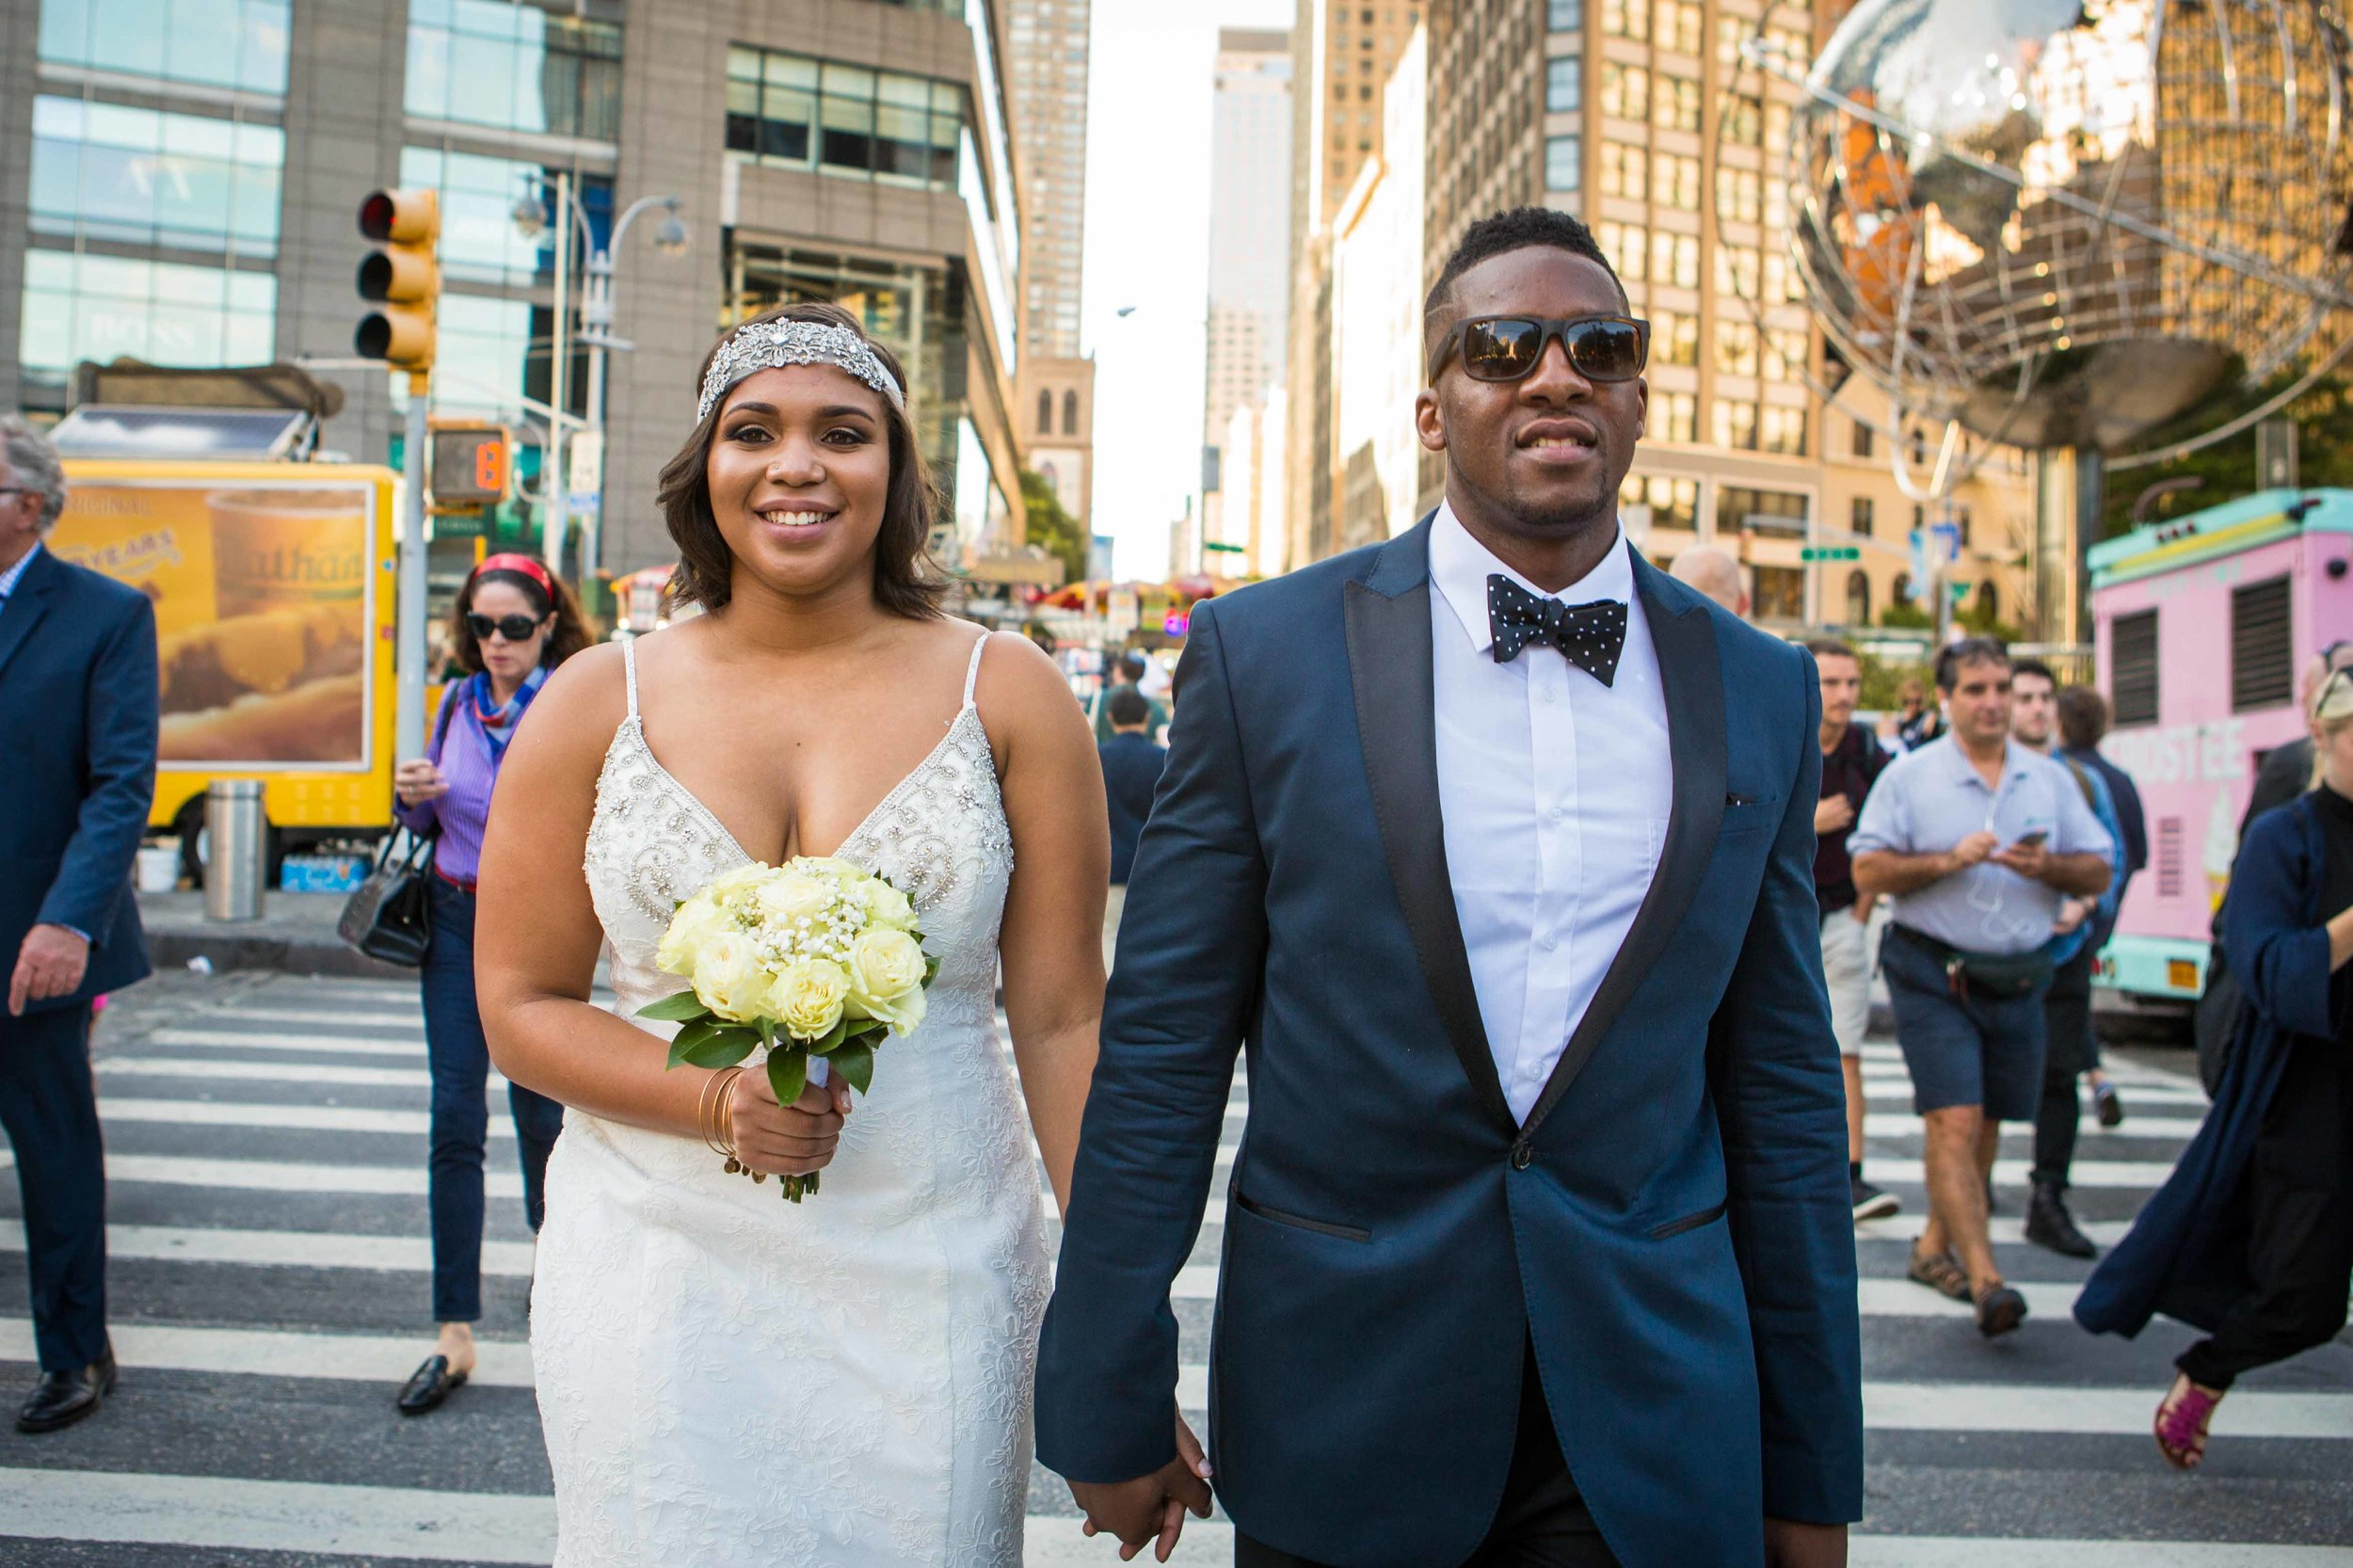 Bianca and Jay Wedding NYC  - Tell-A-Vision Films-1122.jpg